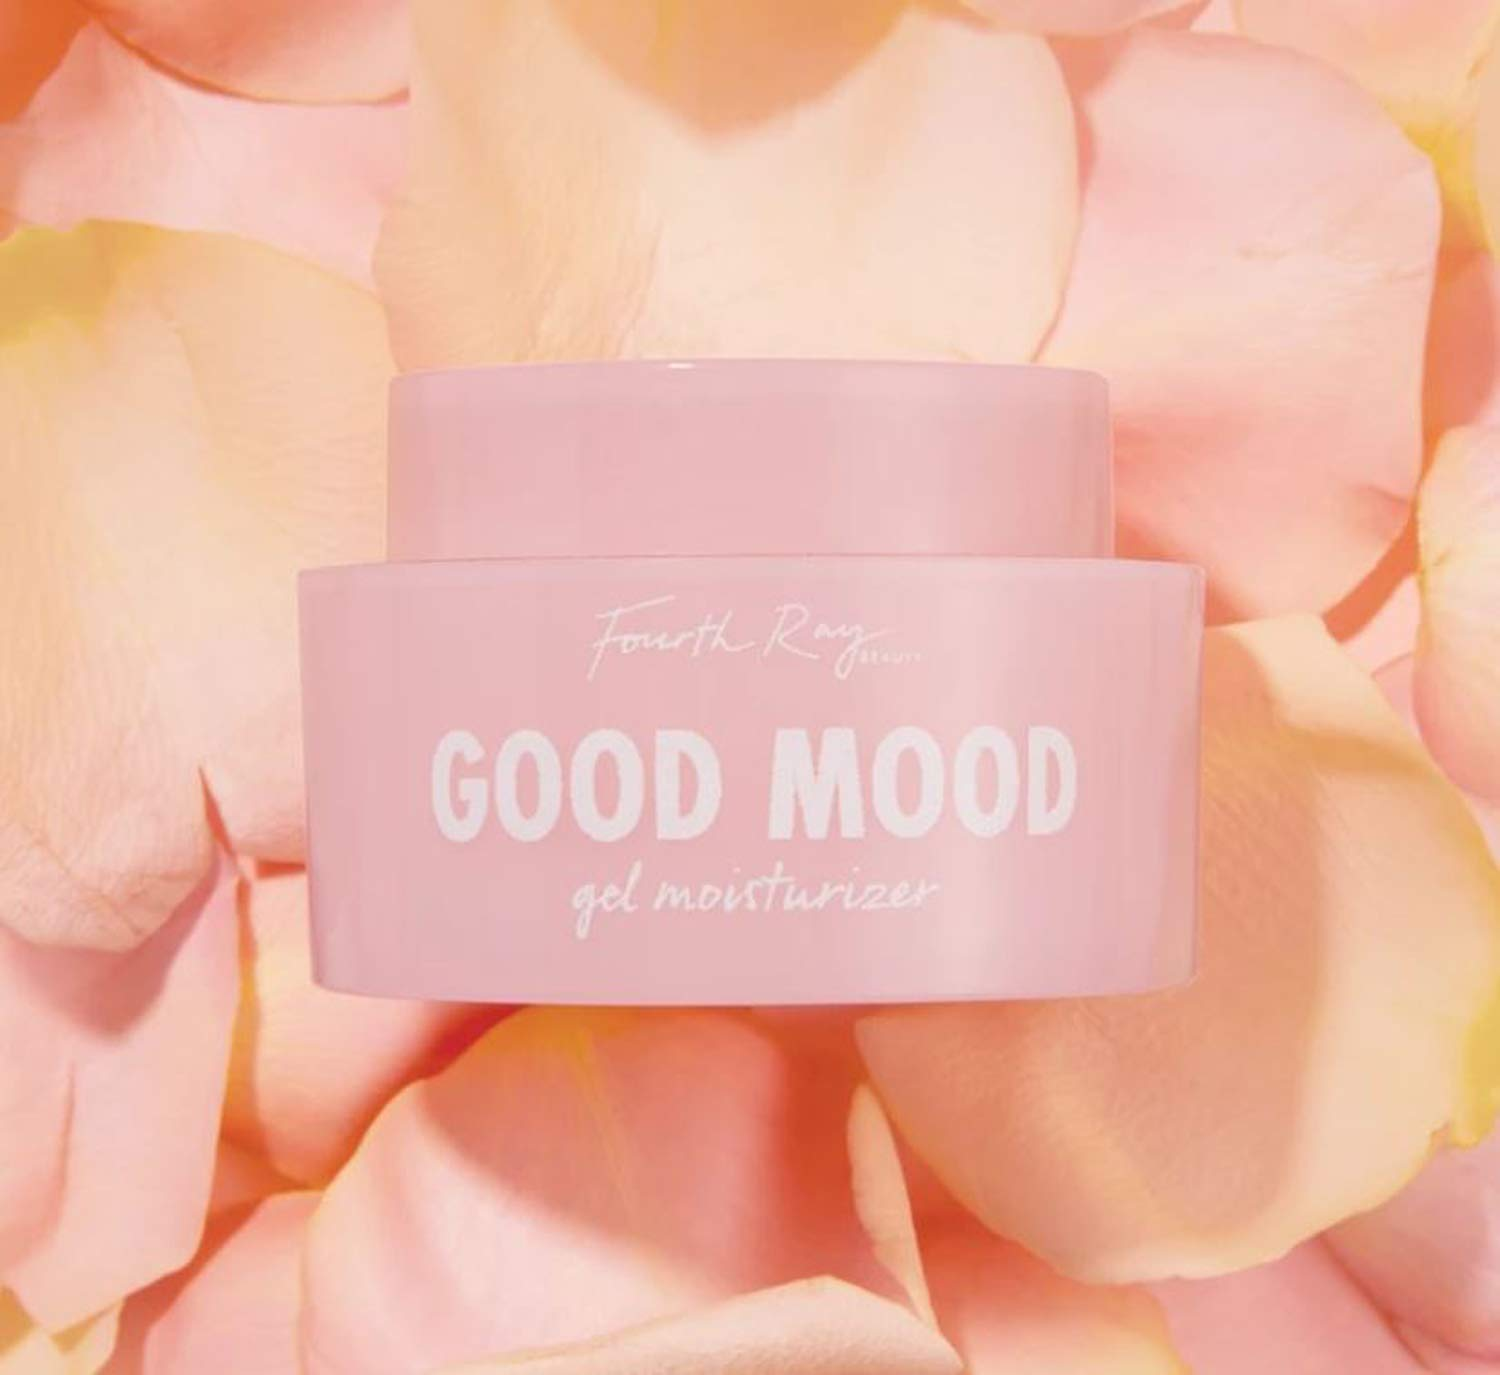 Fourth Ray High material Good Mood NEW before selling Gel Moisturizer Wat 1.7 Formulated With Oz